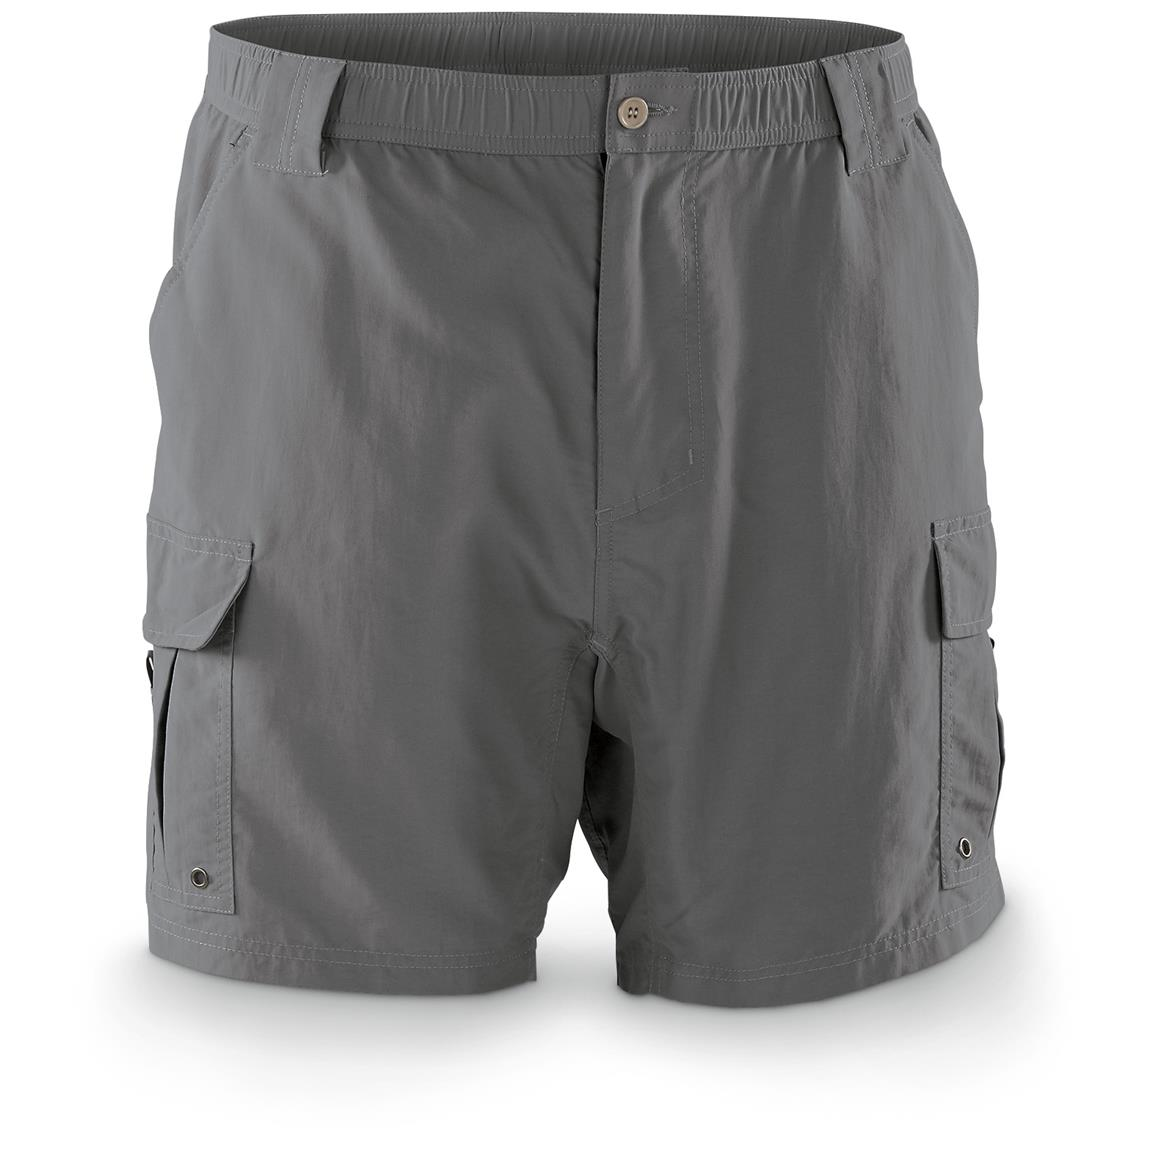 Guide Gear Men's Performance Fishing Cargo Shorts, Grill